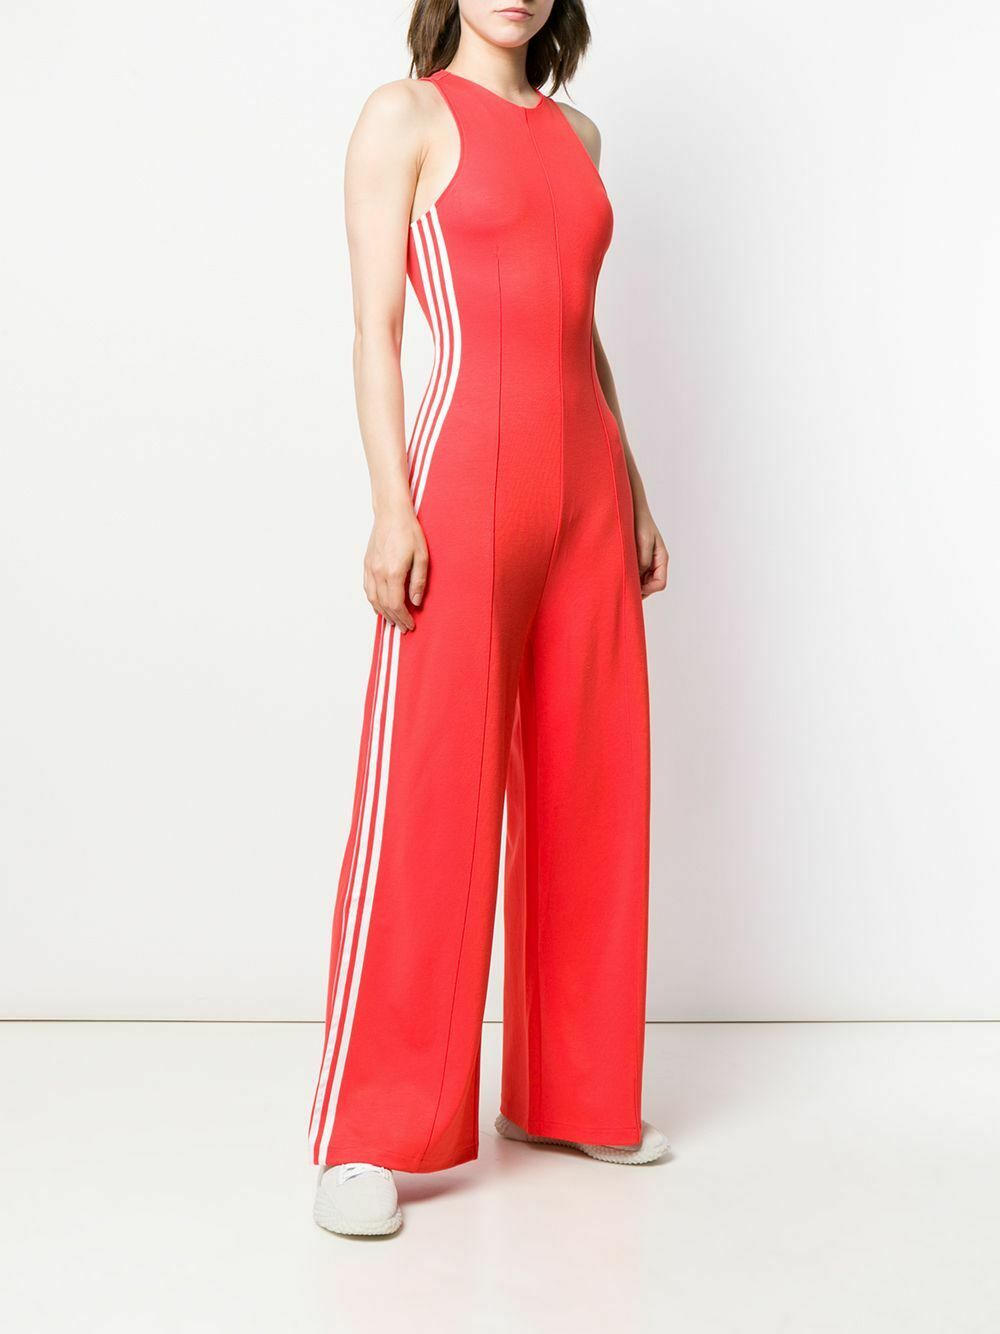 Adidas Originals Womens Small Red Orange Tailored Jumpsuit Wide Leg Tank Top NWT